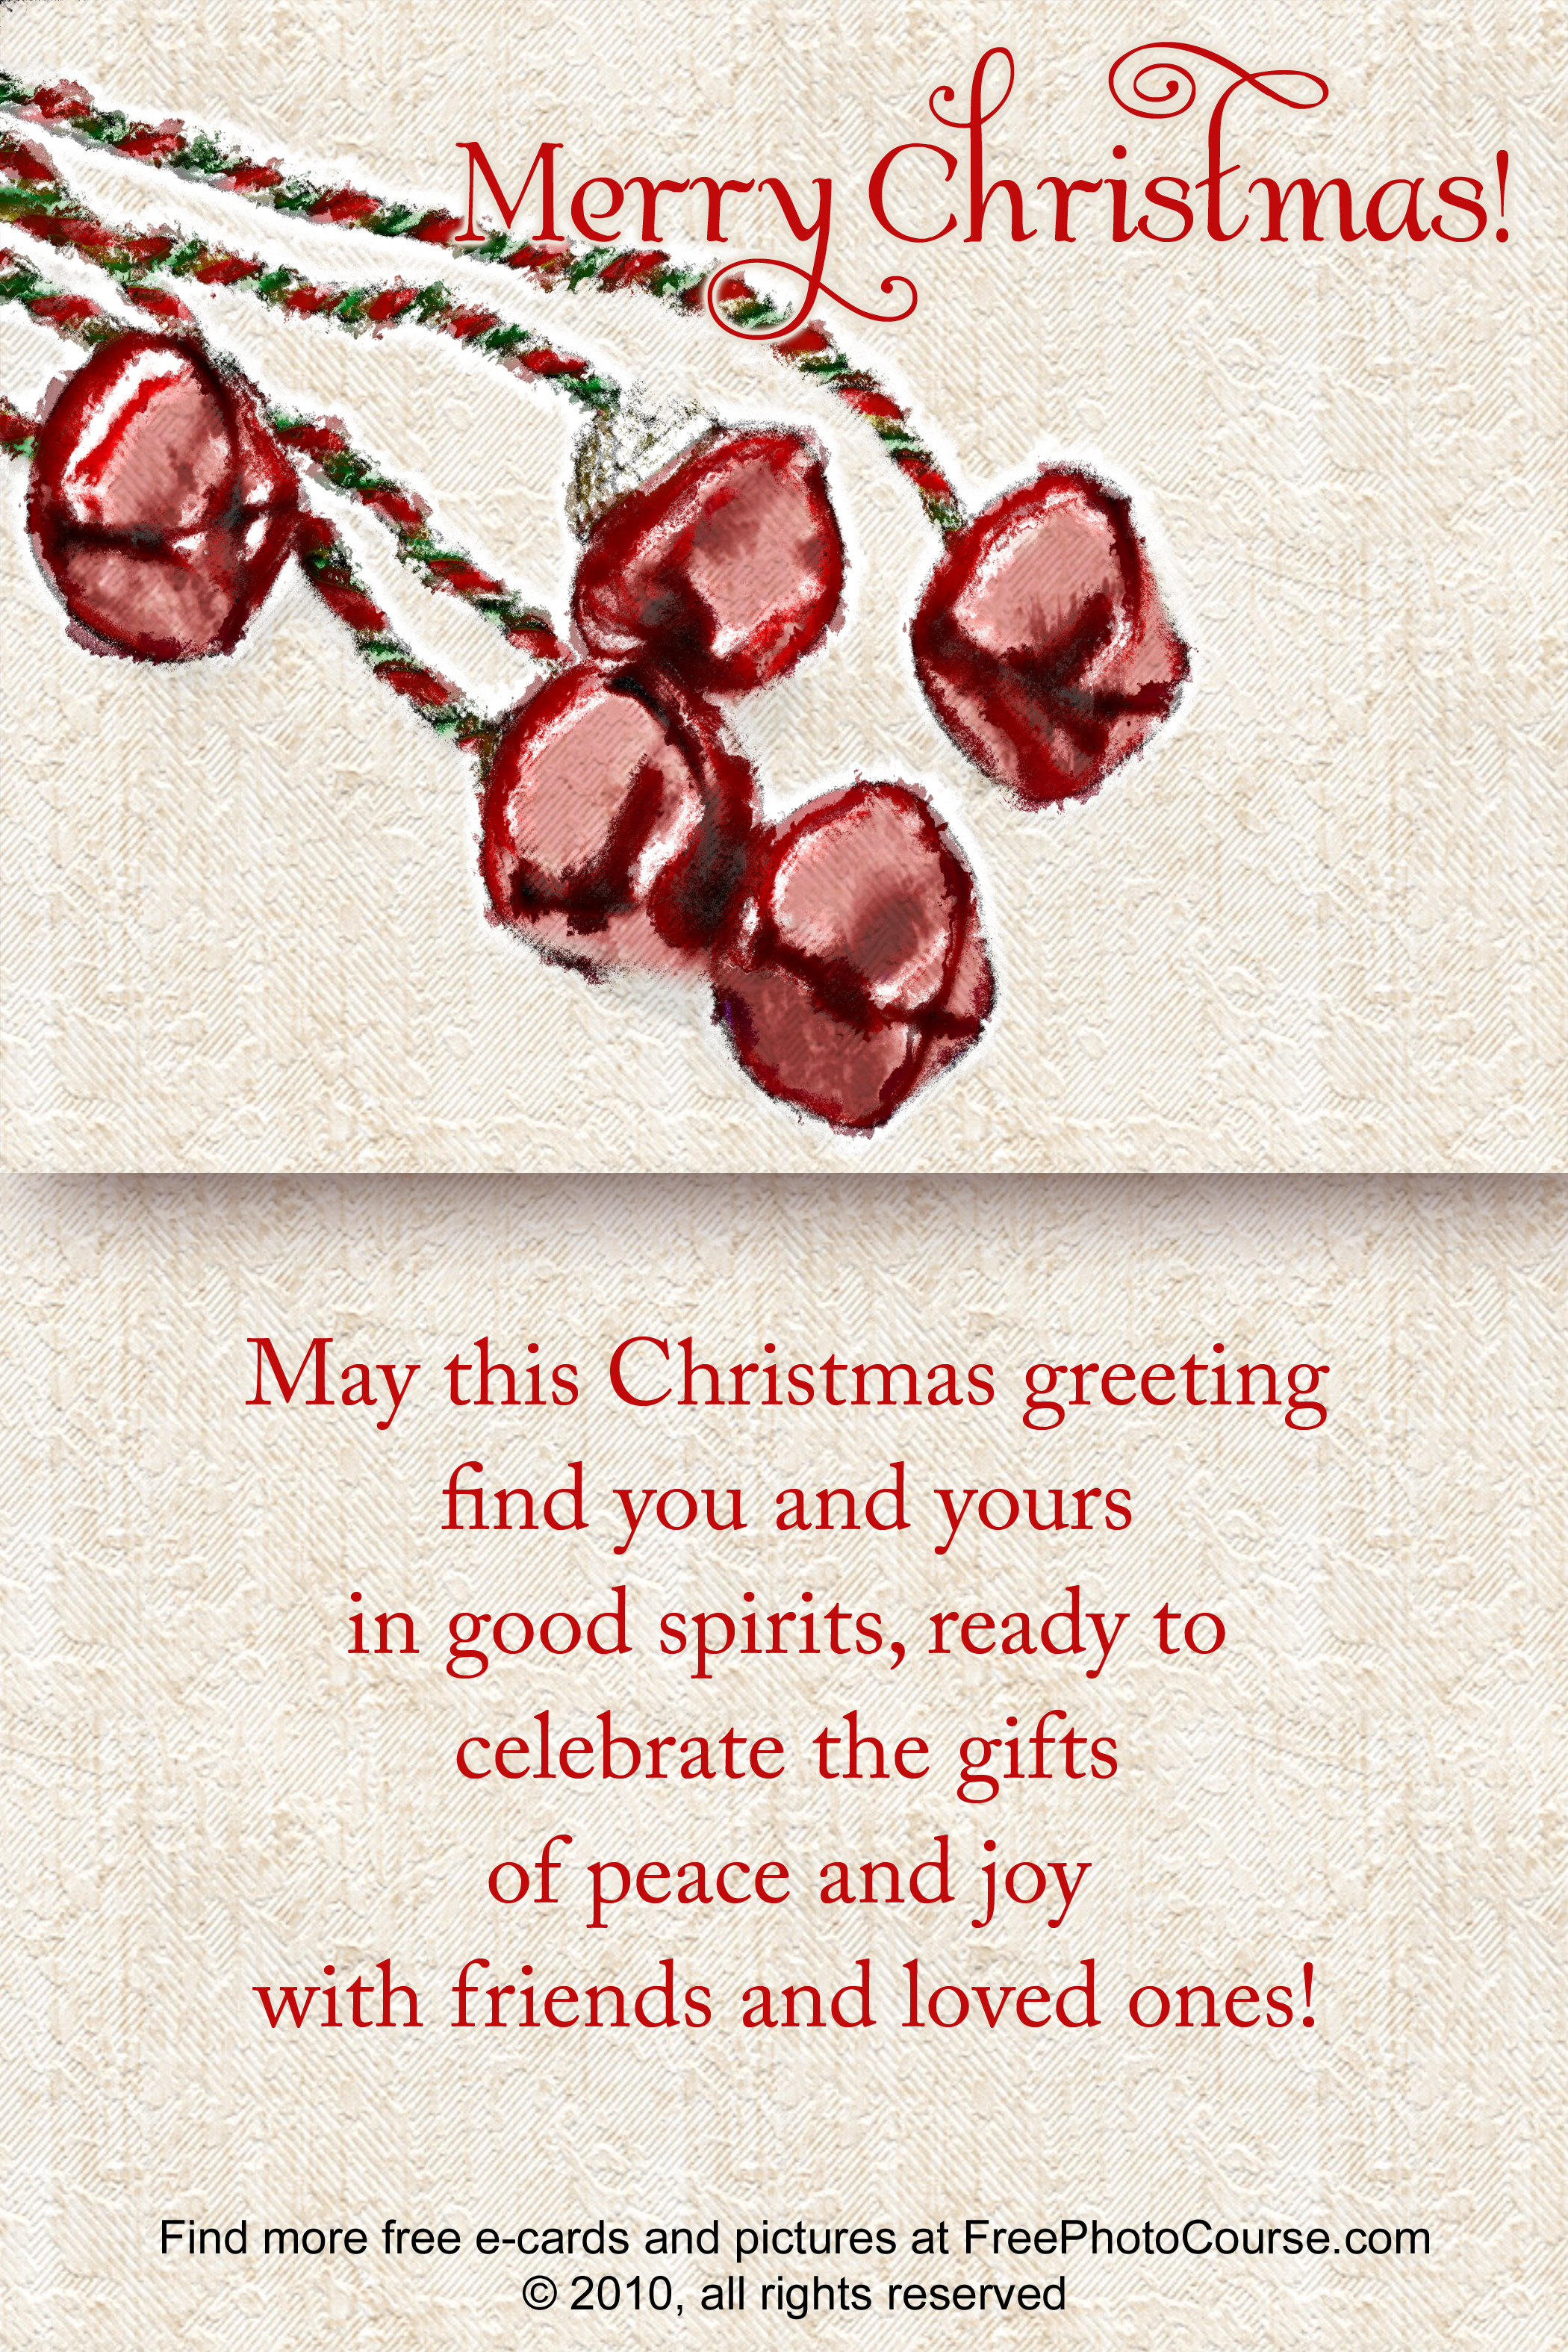 http://freephotocourse.com/uploads/2/7/2/8/2728490/christmas_e-card_003.jpg